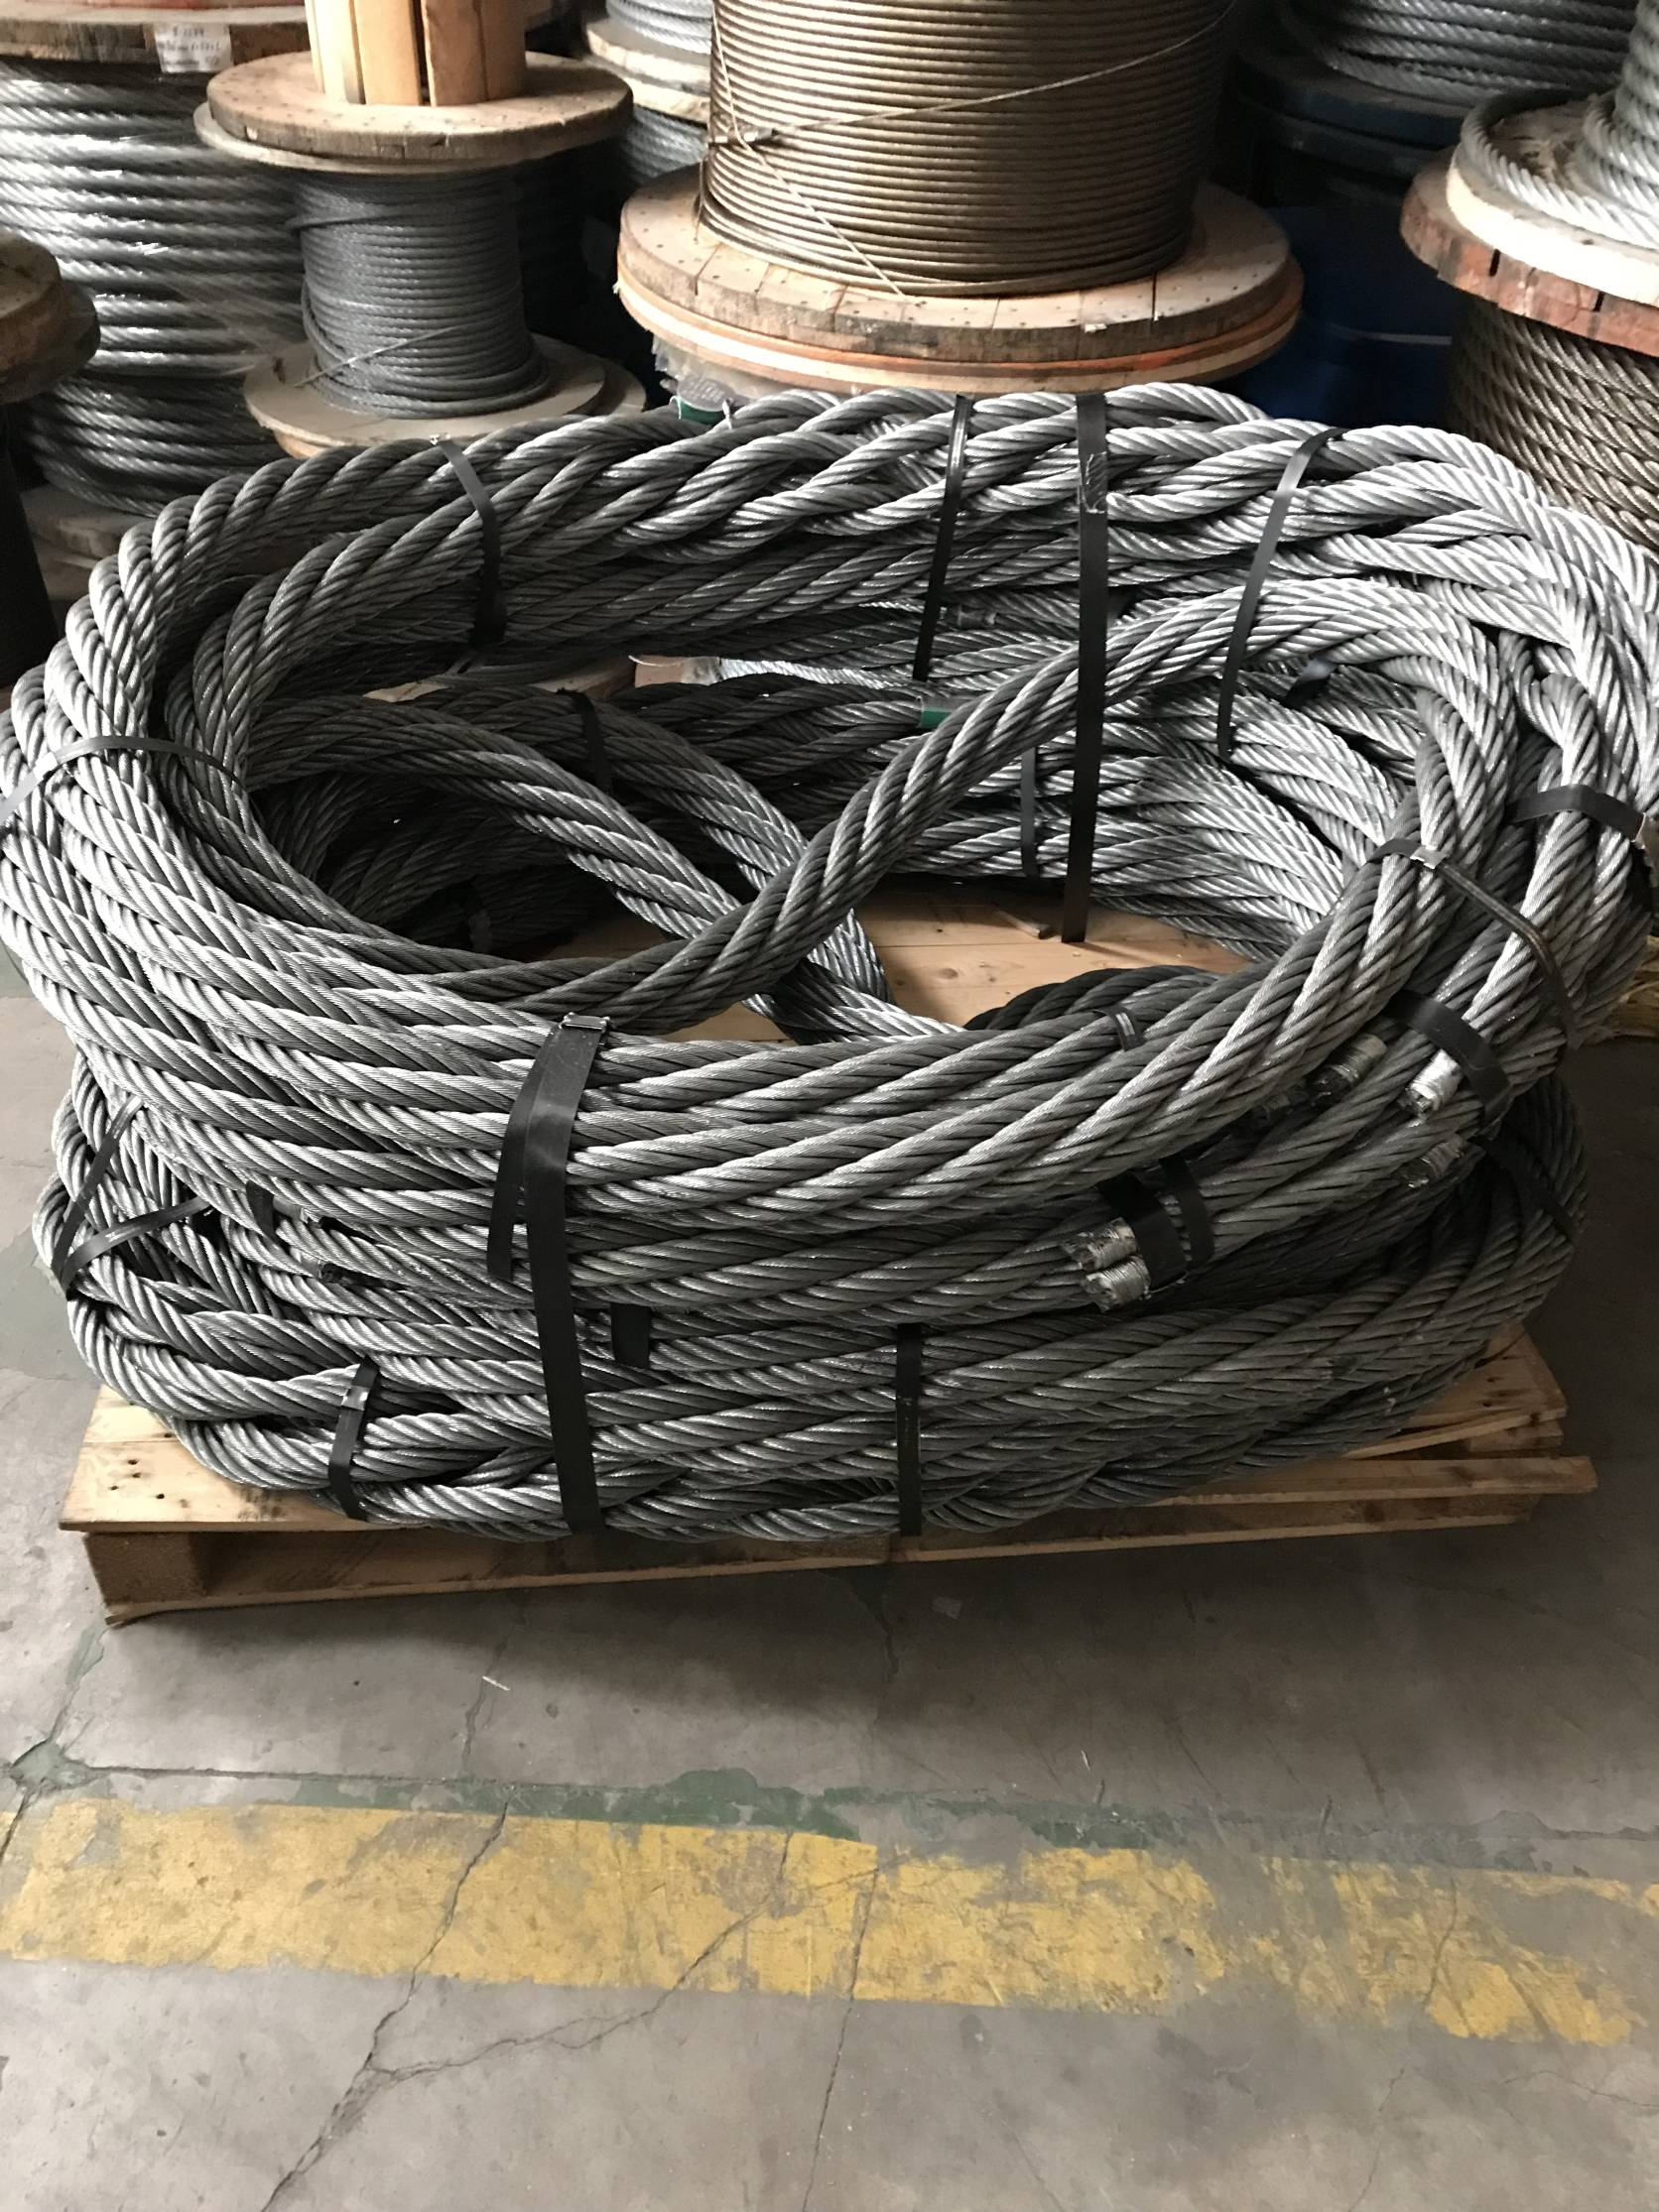 Heavy lift slings and grommet